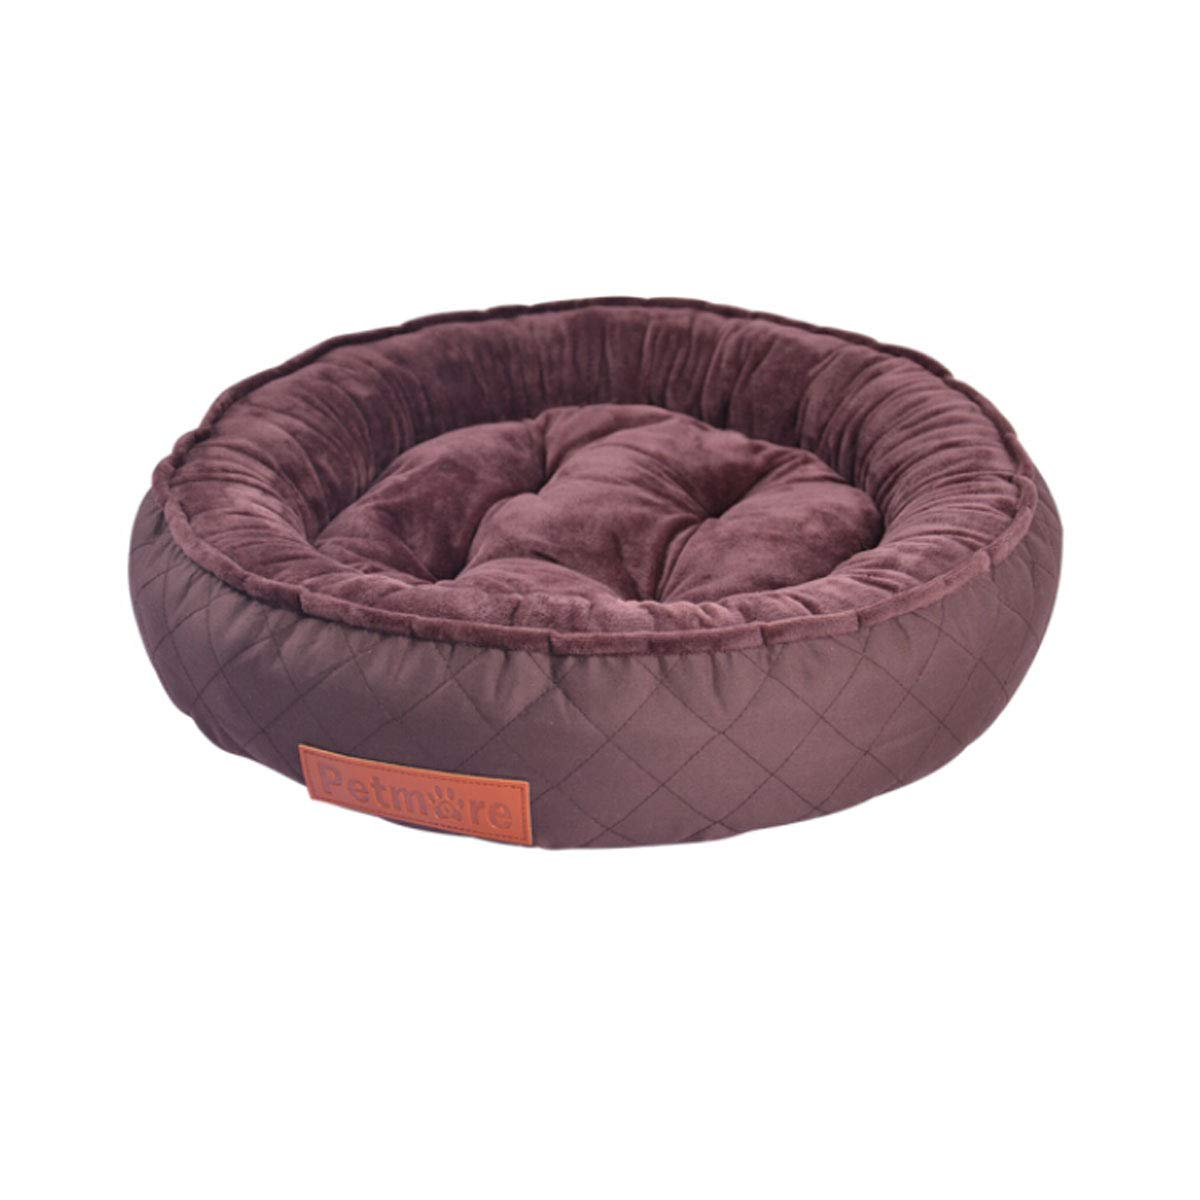 Brown LTongboshi Dog Bed, Detachable Puppy, Teddy golden Dog Pad, Large Dog Bed, Small Medium and Large Mattress, Dog Mattress, Pet Supplies, Garfield, Kennel (color   Brown, Size   L)